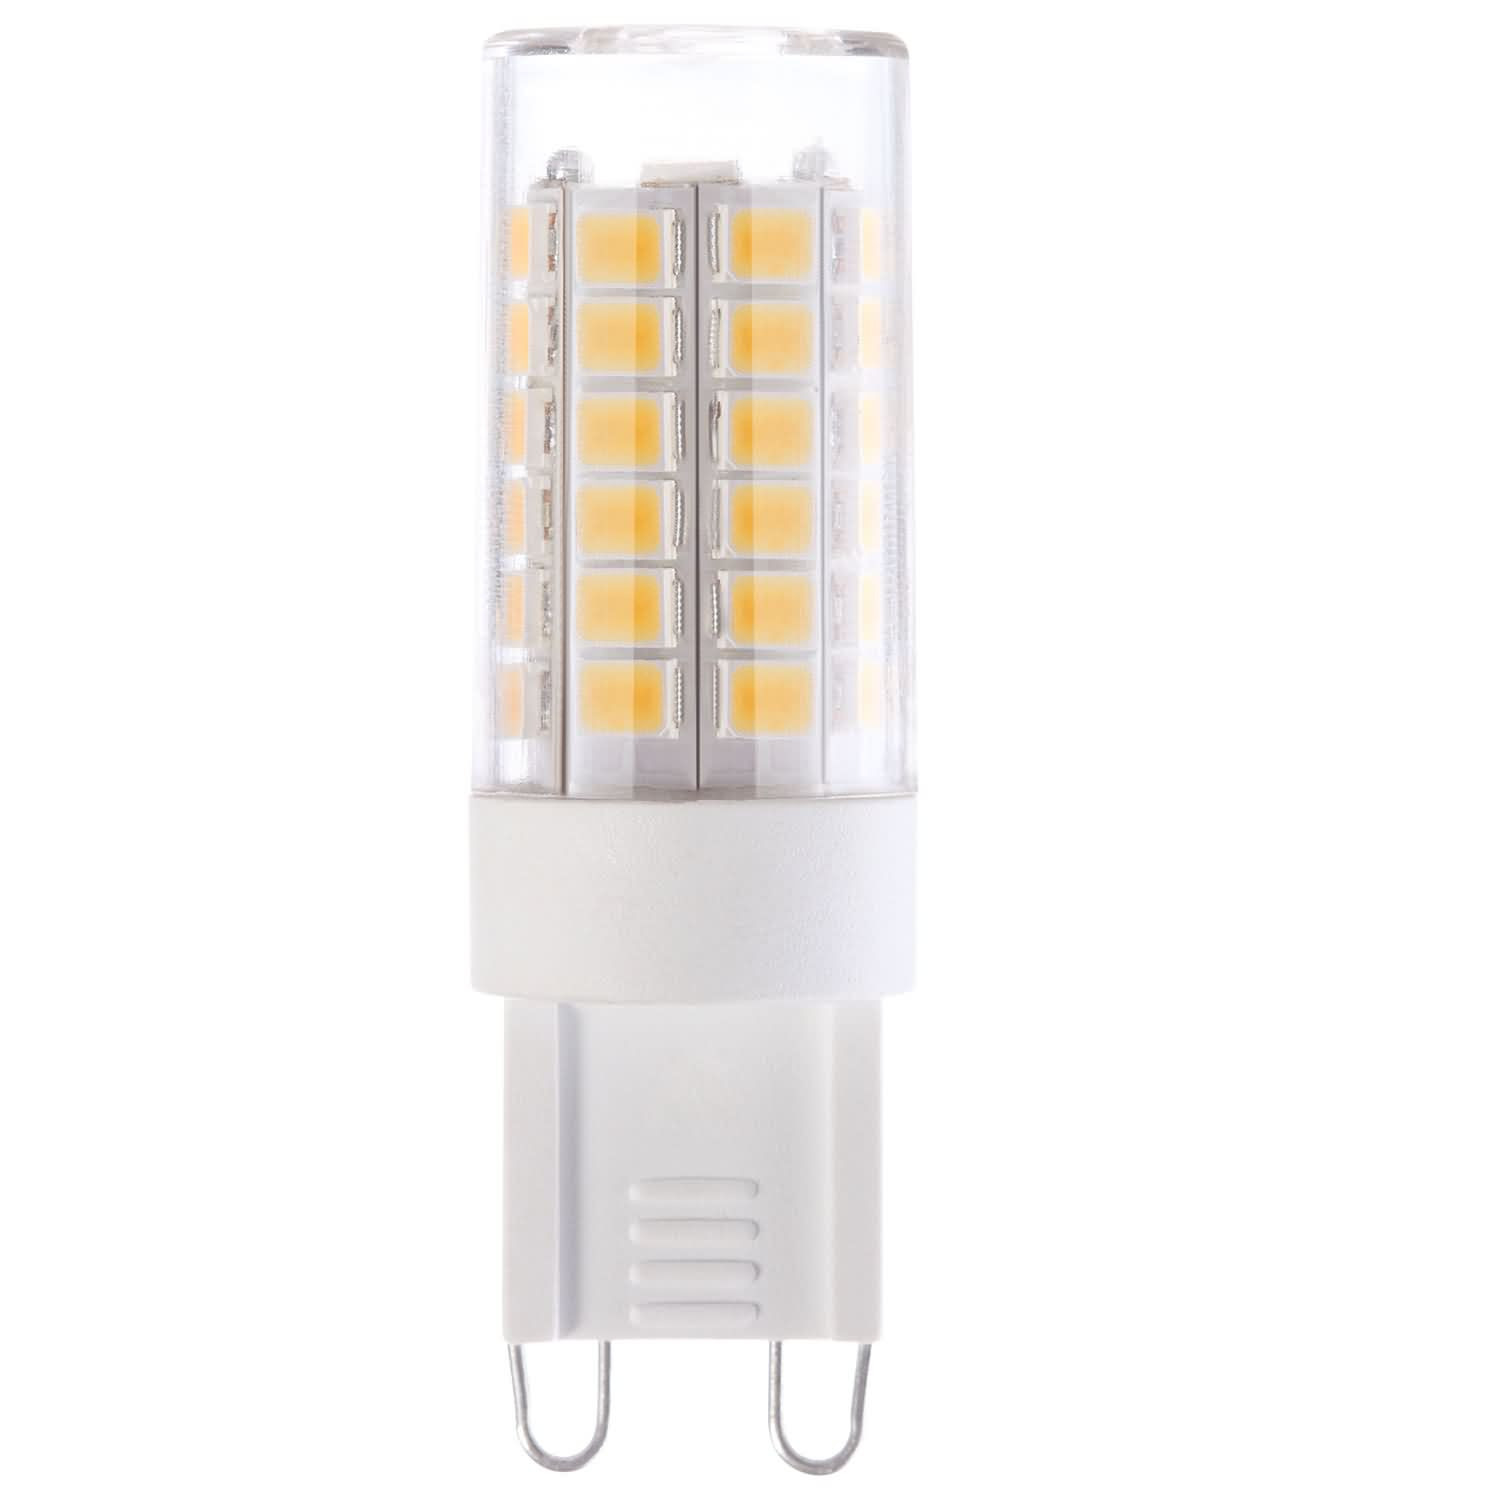 mengs g9 5w led light 51x 2835 smd led bulb lamp with. Black Bedroom Furniture Sets. Home Design Ideas